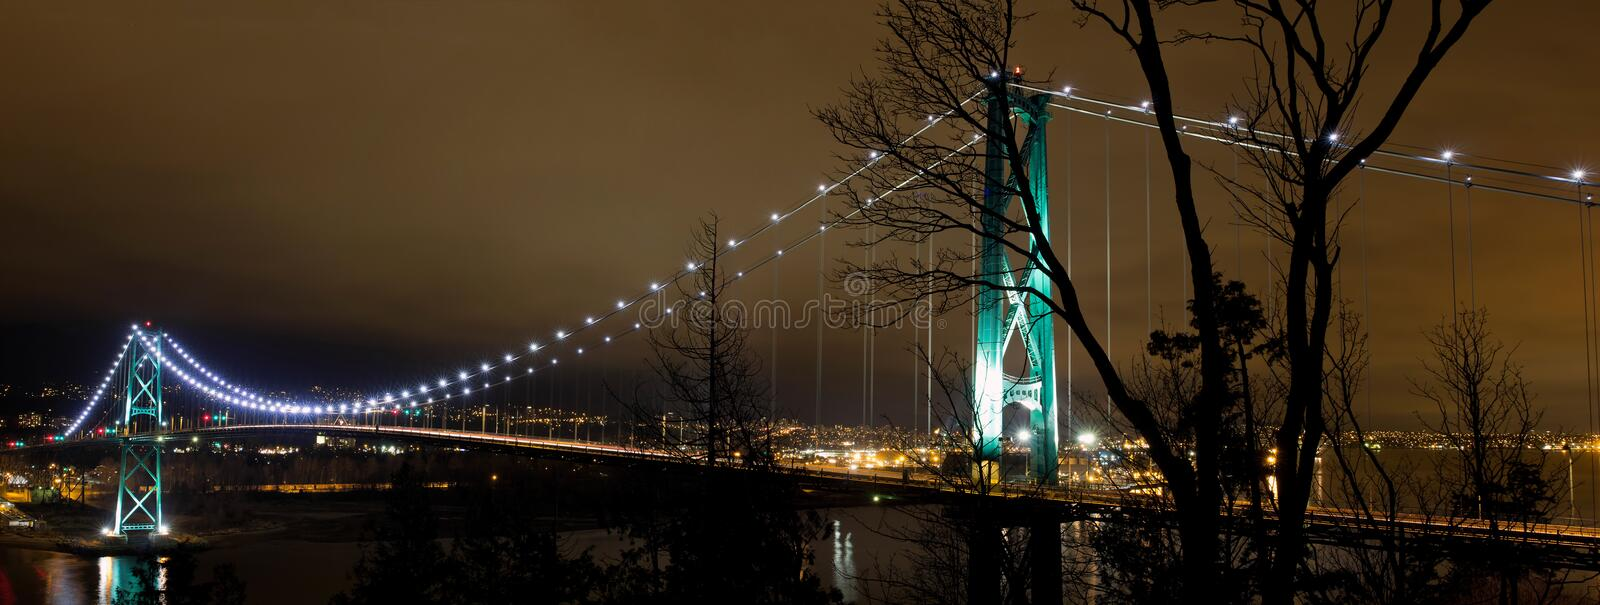 Lions Gate Bridge in Vancouver Bc at Night stock image